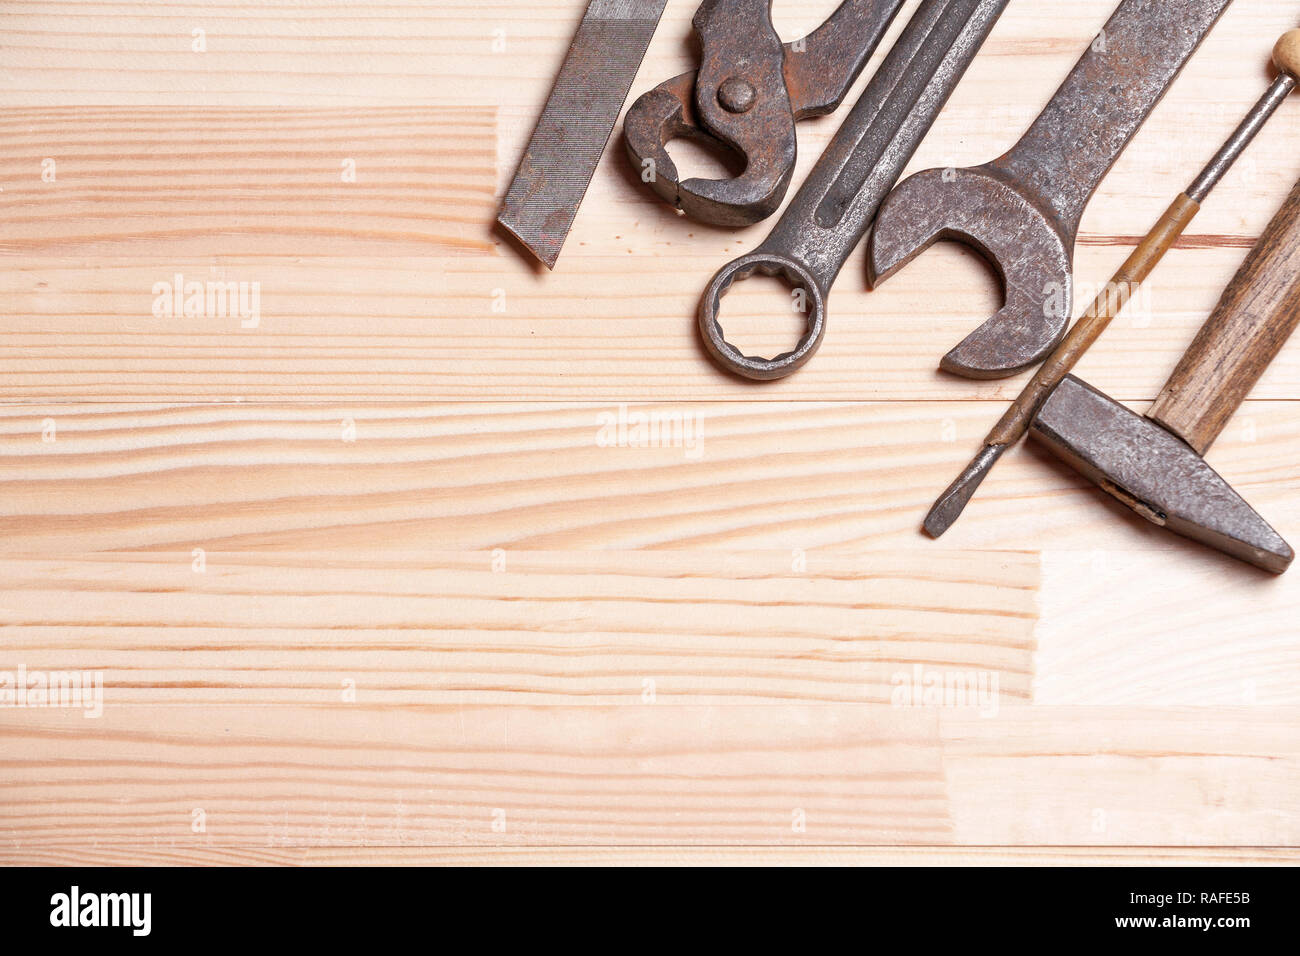 Rusty rugged old work industrial tools key wrench screw driver light natural wooden background Stock Photo